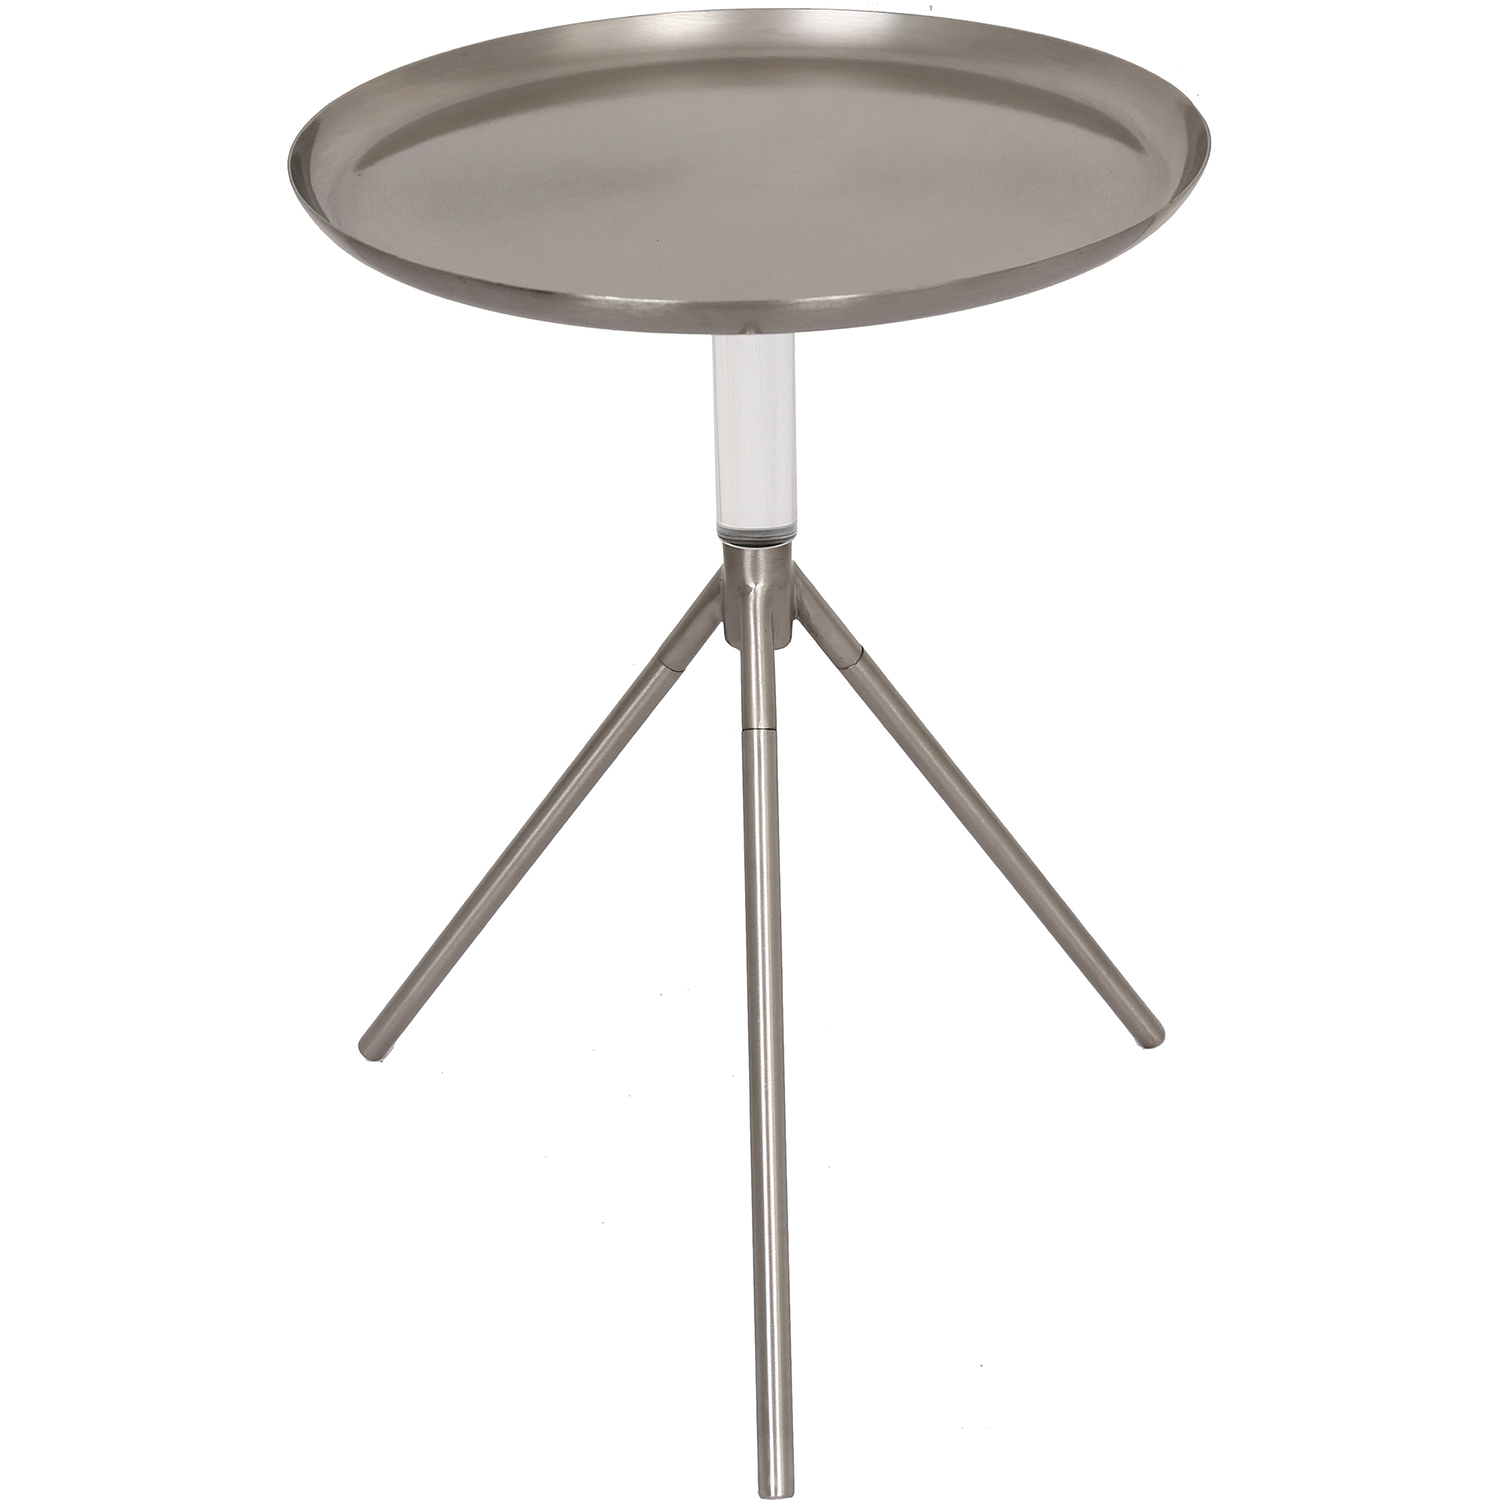 Ren-Wil Pacey Accent Table - Pewter/Clear